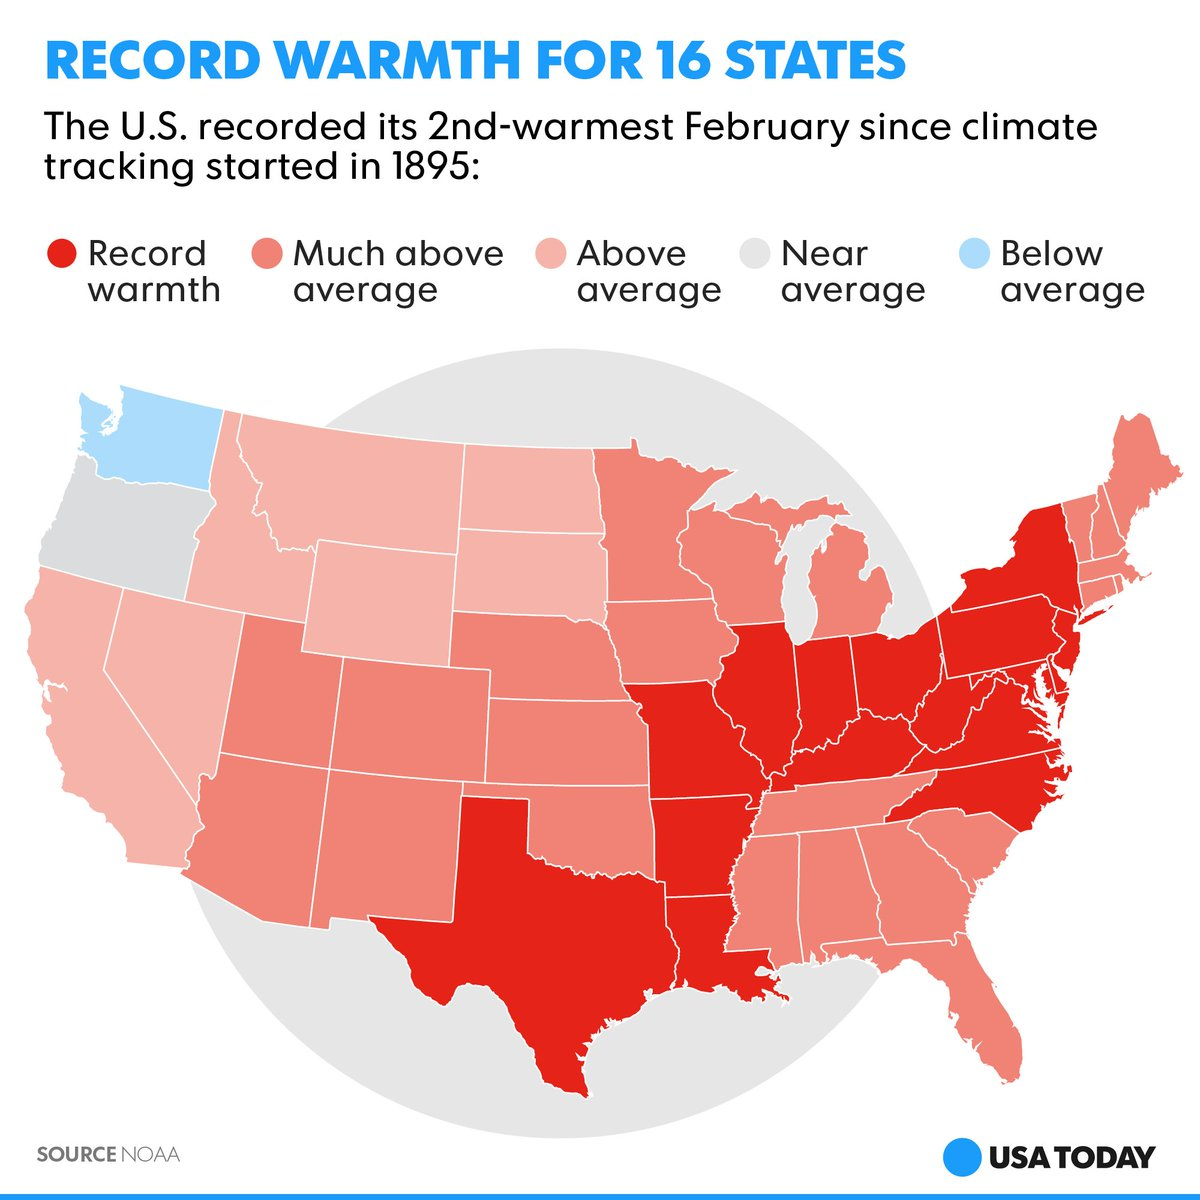 Last month was the 2nd-warmest February in the USA since climate tracking started in 1895: